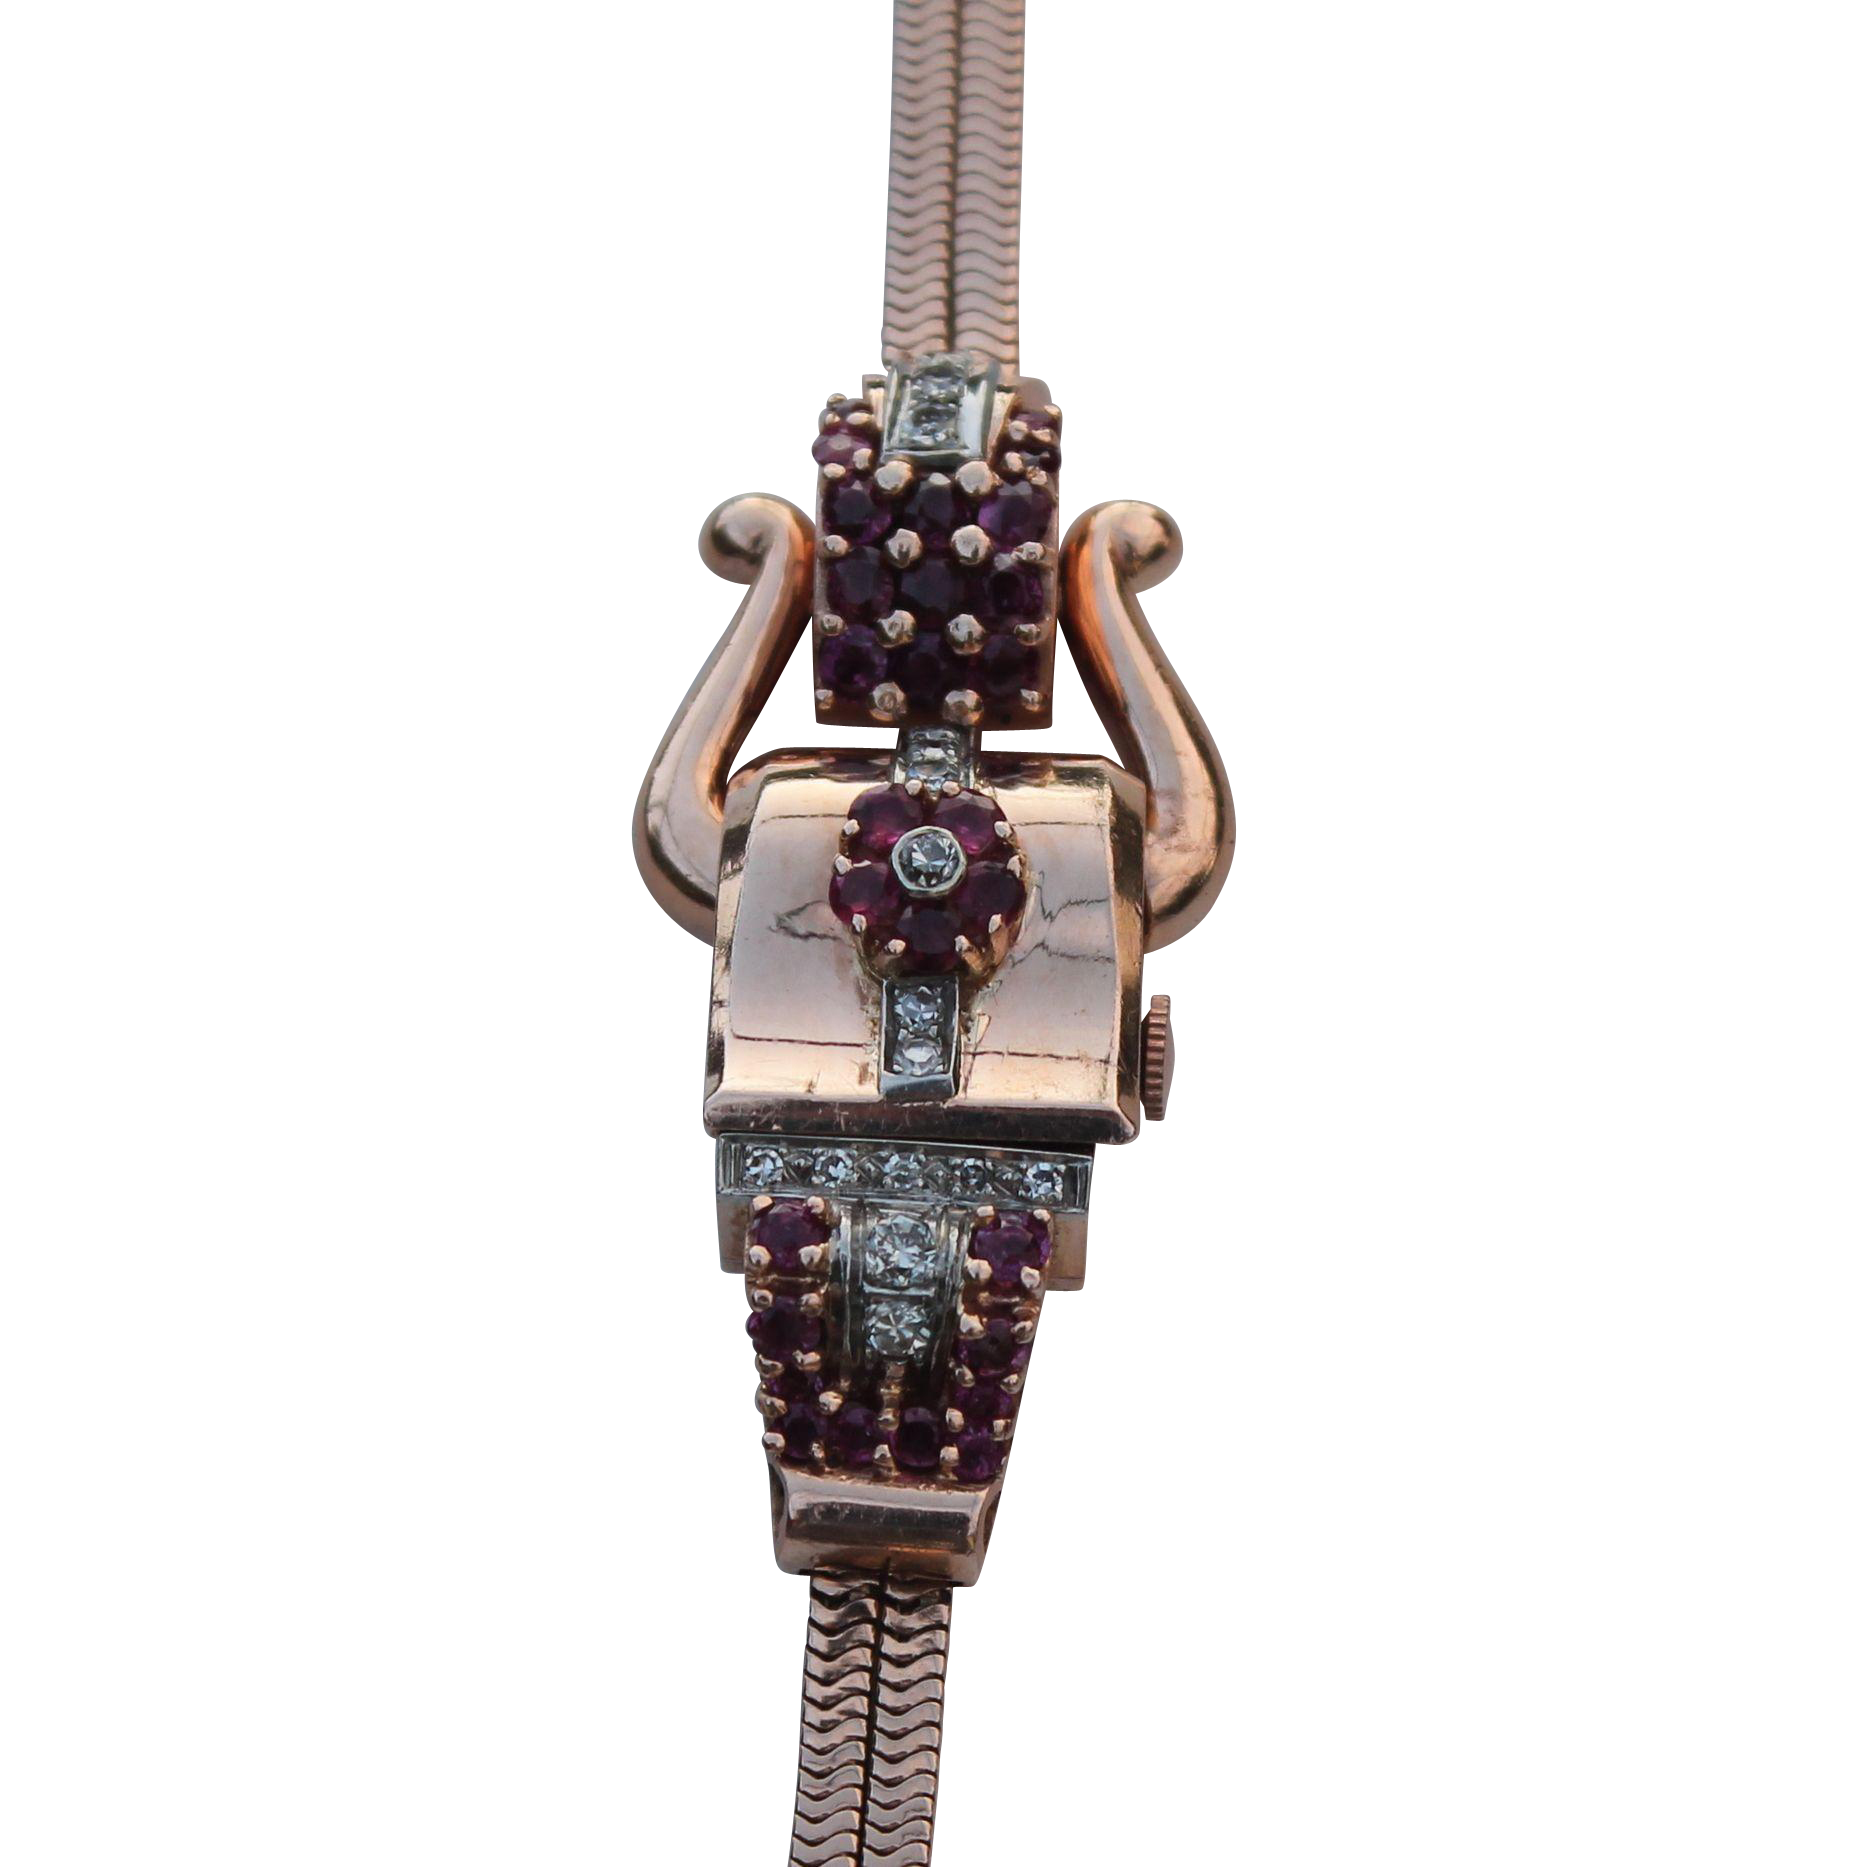 art deco 14 kt rose gold watch bracelet with diamonds and rubies from diamond dis on ruby lane. Black Bedroom Furniture Sets. Home Design Ideas